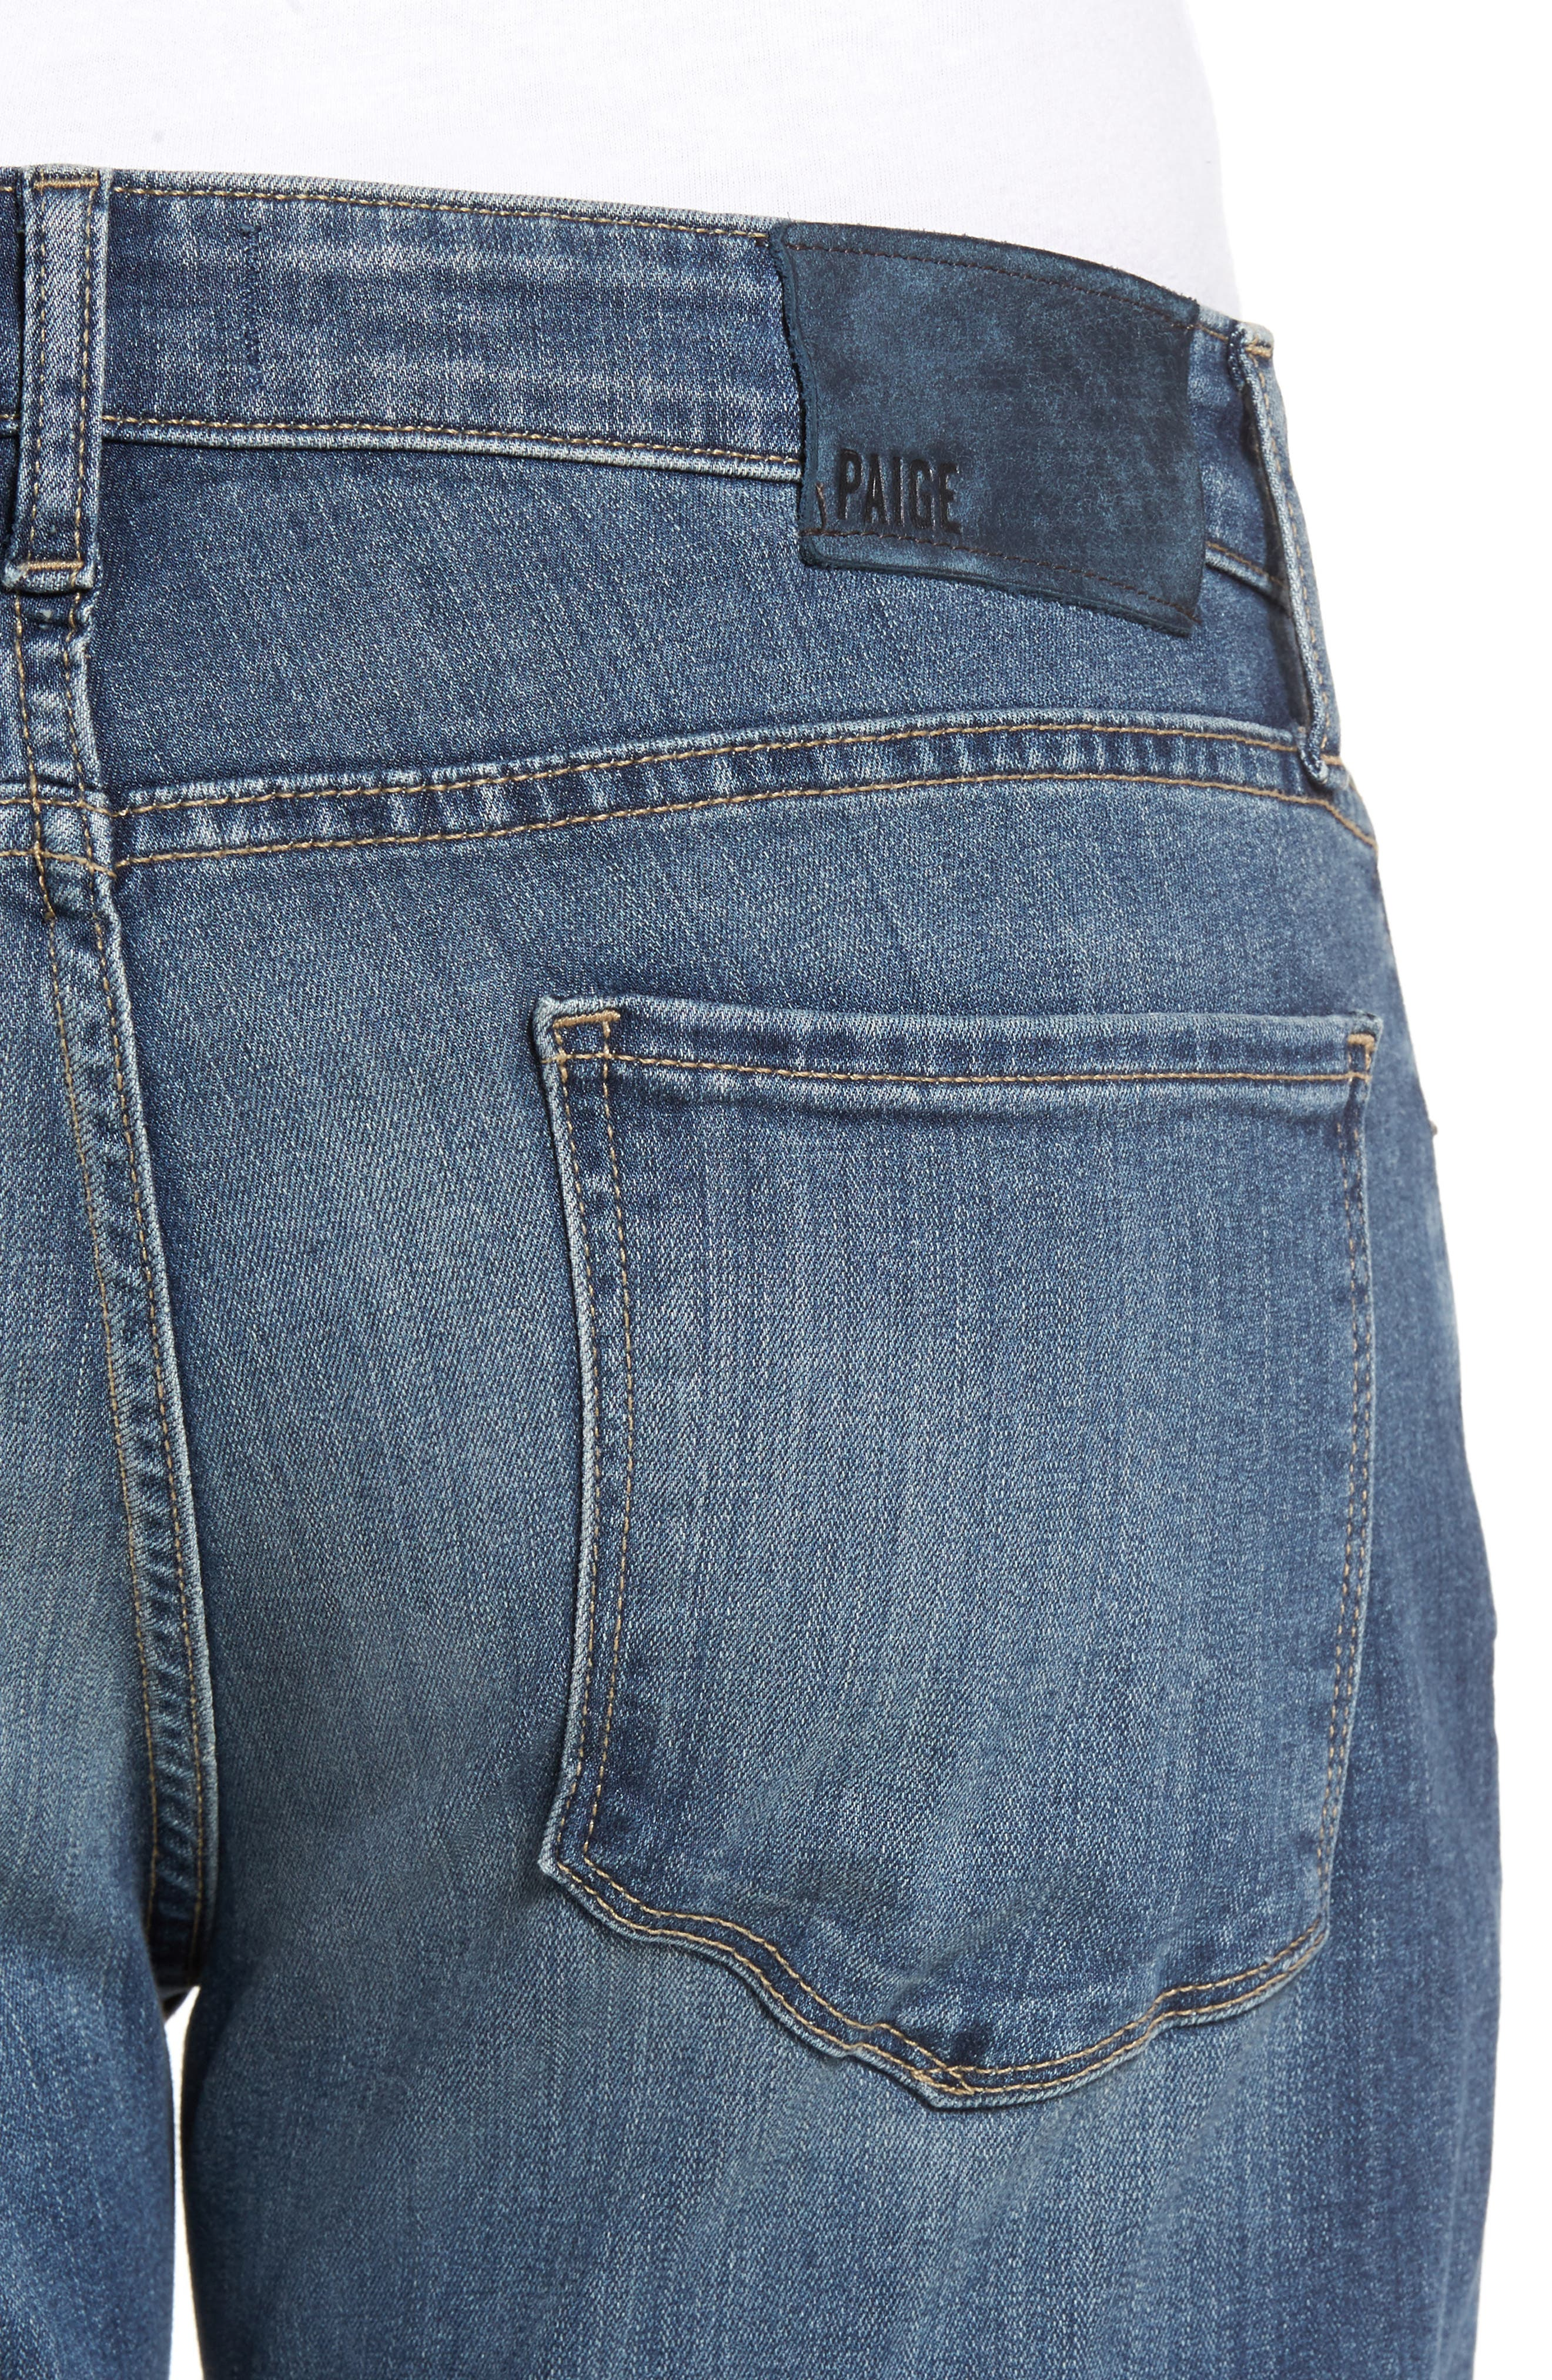 Normandie Straight Fit Jeans,                             Alternate thumbnail 4, color,                             ALMONT